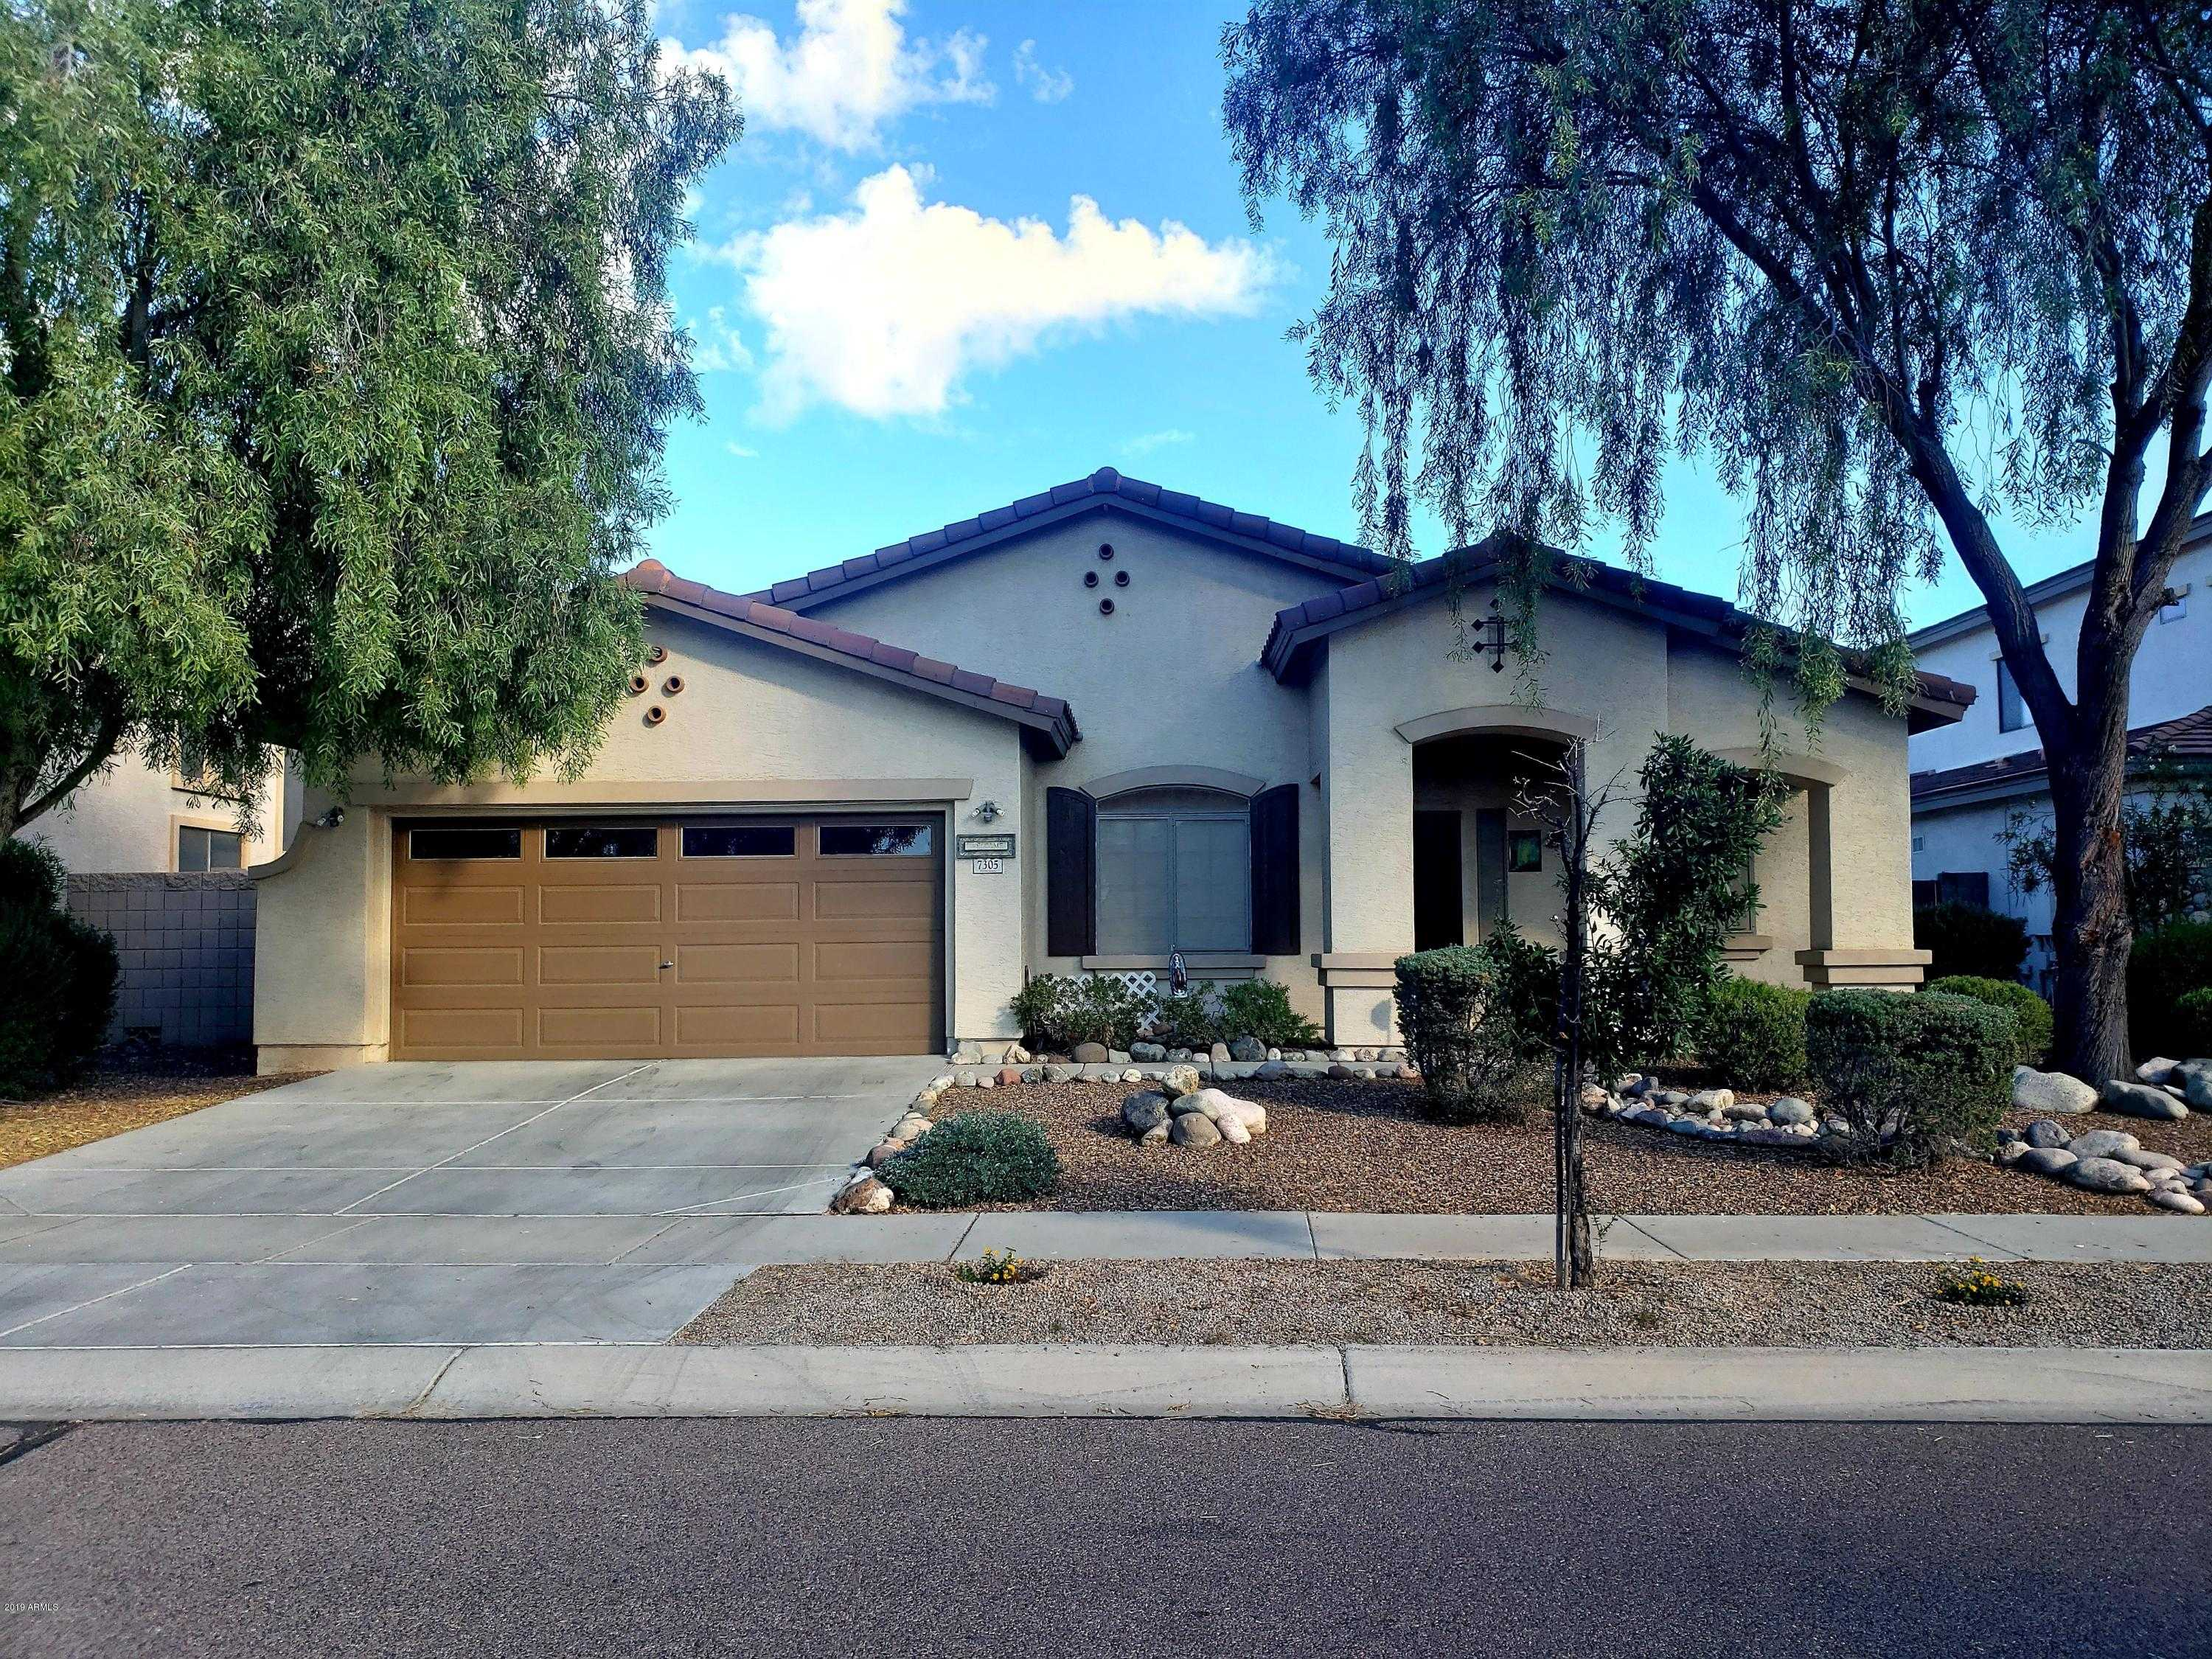 $327,900 - 4Br/2Ba - Home for Sale in Rovey Farm Estates South, Glendale